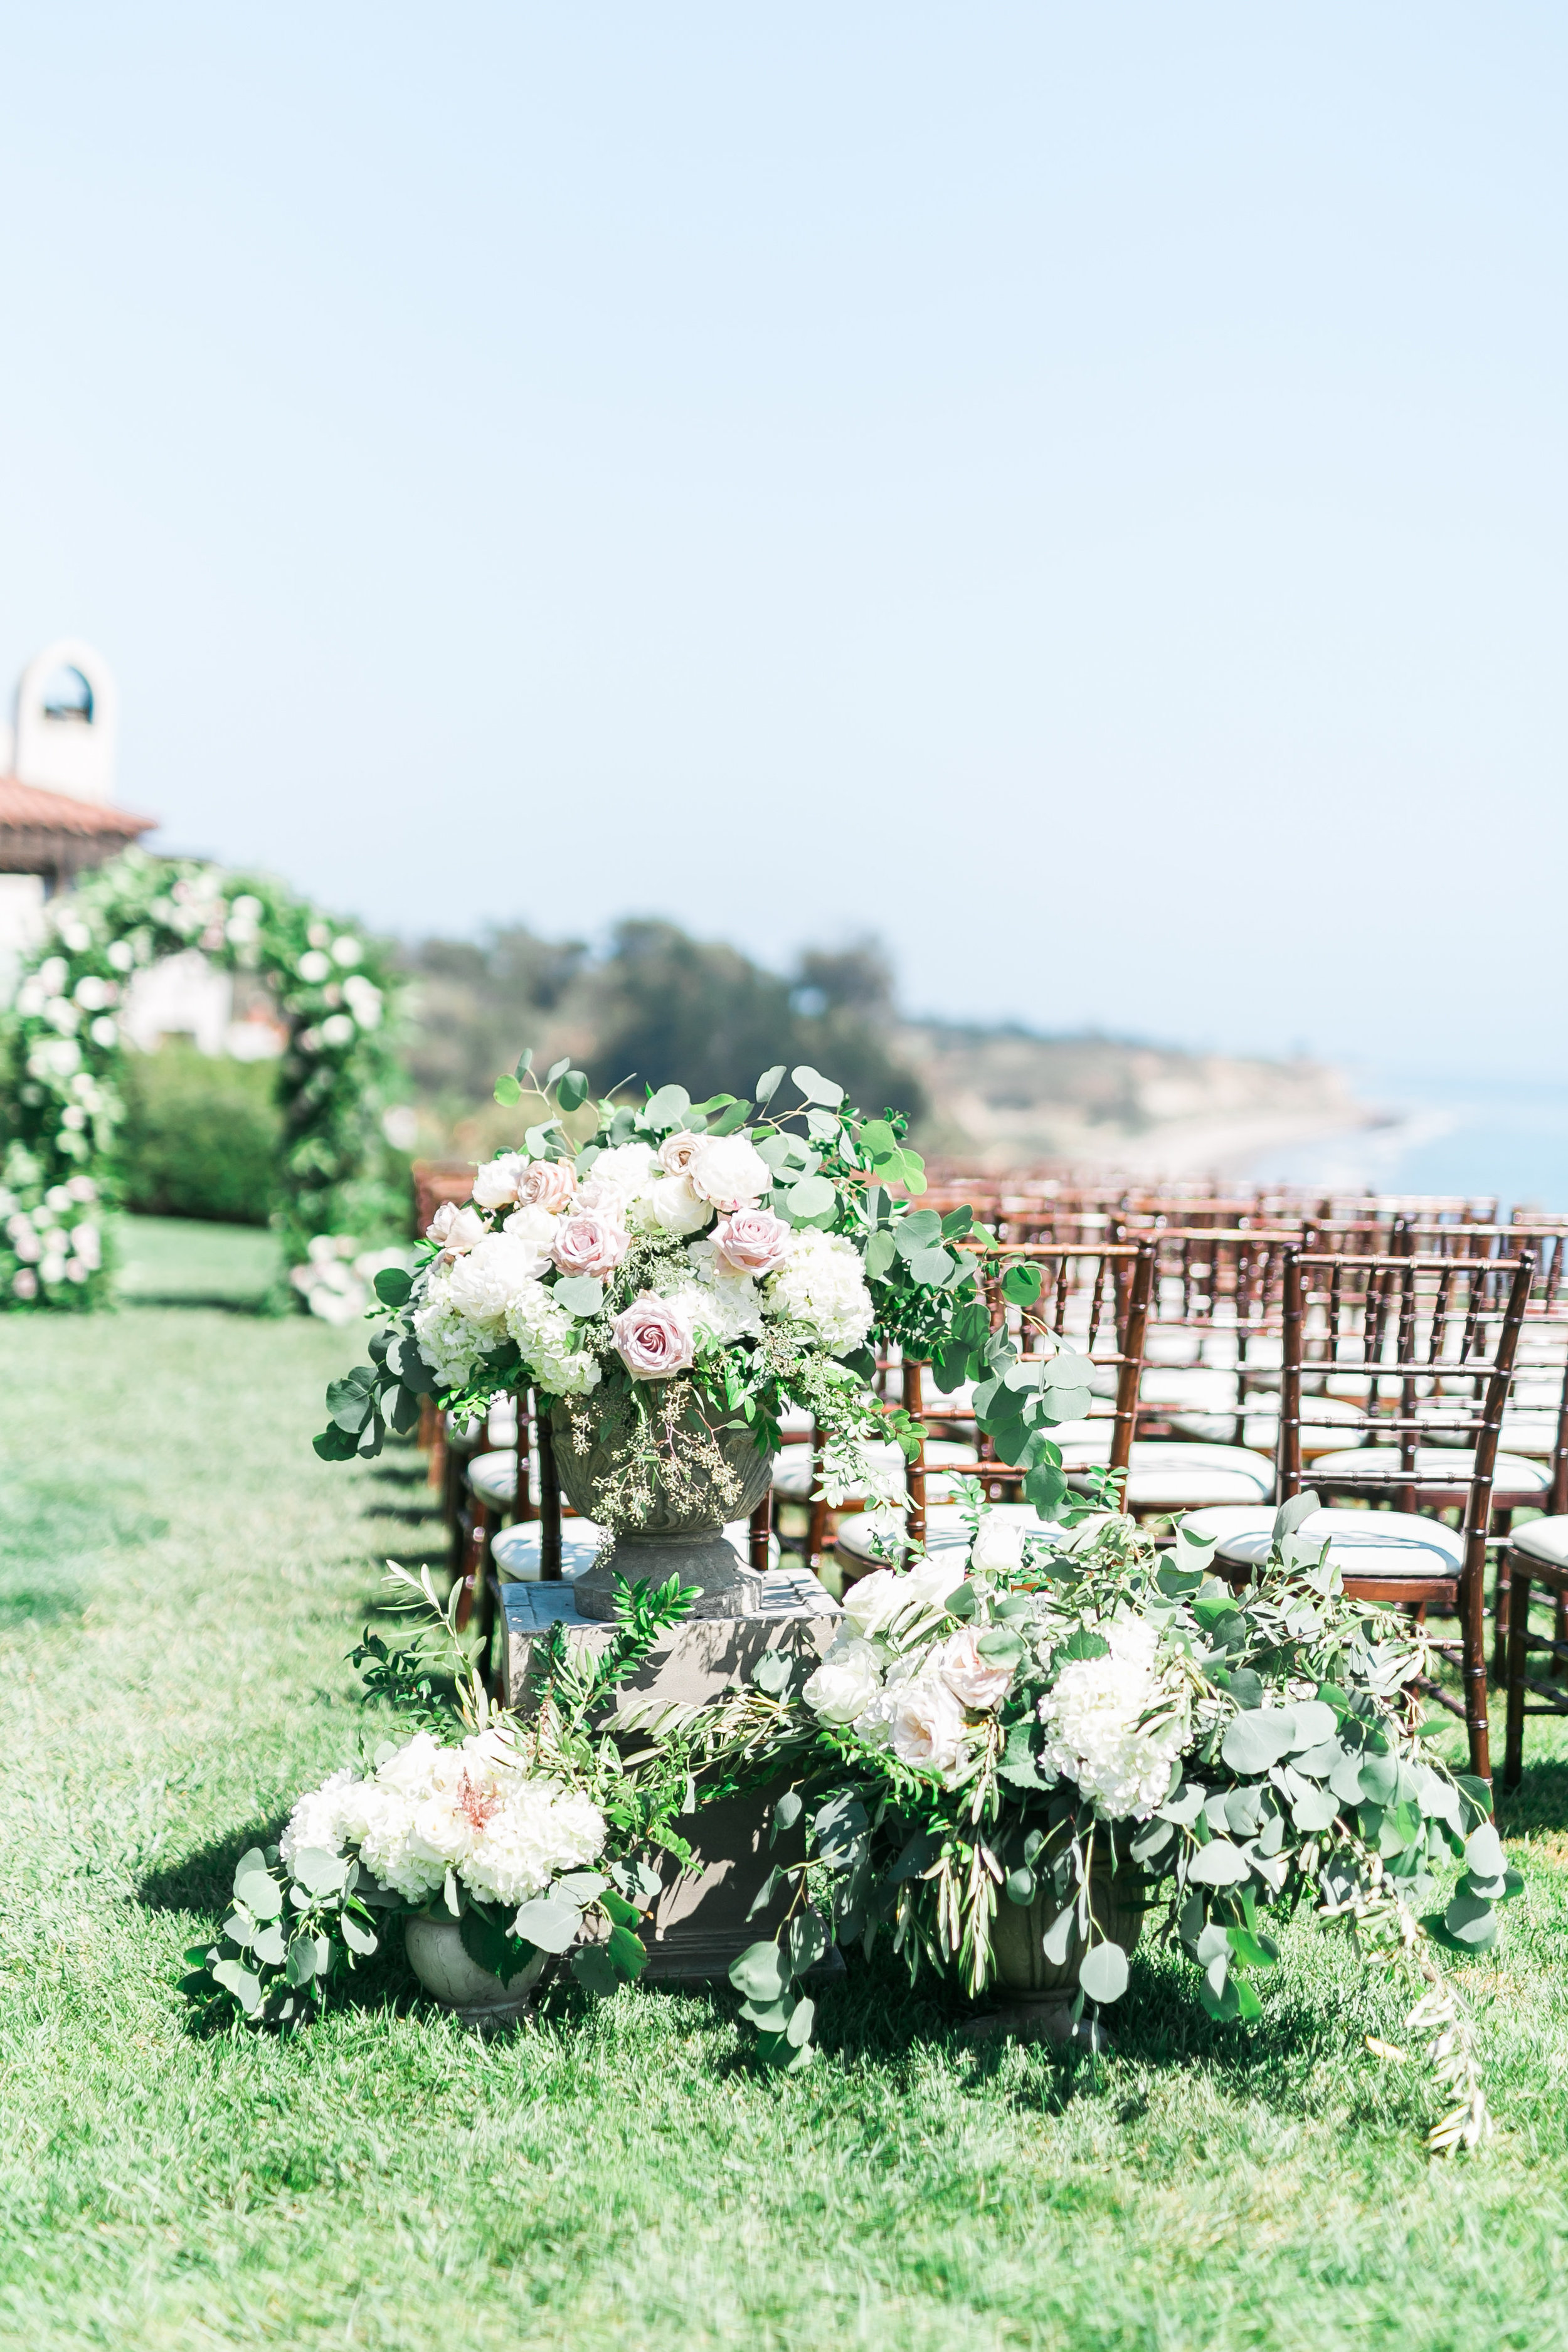 Outdoor wedding at The Bacara Santa Barbara.   CREDITS:  Destination Wedding Planner  ANDREA EPPOLITO EVENTS  · Images by  J.ANNE P  HOTOGRAPHY  · Video  HOO FILMS  · Venue Ritz Carlton Bacara Santa Barbara ·Gown  MONIQUE LHULLIER ·Bridesmaids Dresses  SHOW ME YOUR MUMU ·Stationery  SHE PAPERIE ·Bride's Shoes  BADGLEY MISCHKA ·Hair and Makeup  TEAM HAIR AND MAKEUP · Floral  BLUE MAGNOLIA ·Linen  LA TAVOLA ·Decor Rentals  TENT MERCHANT ·Calligraphy  EBB ·Lighting  FIVE STAR AV ·Ice Cream Station  MCCONNELL'S ICE CREAM